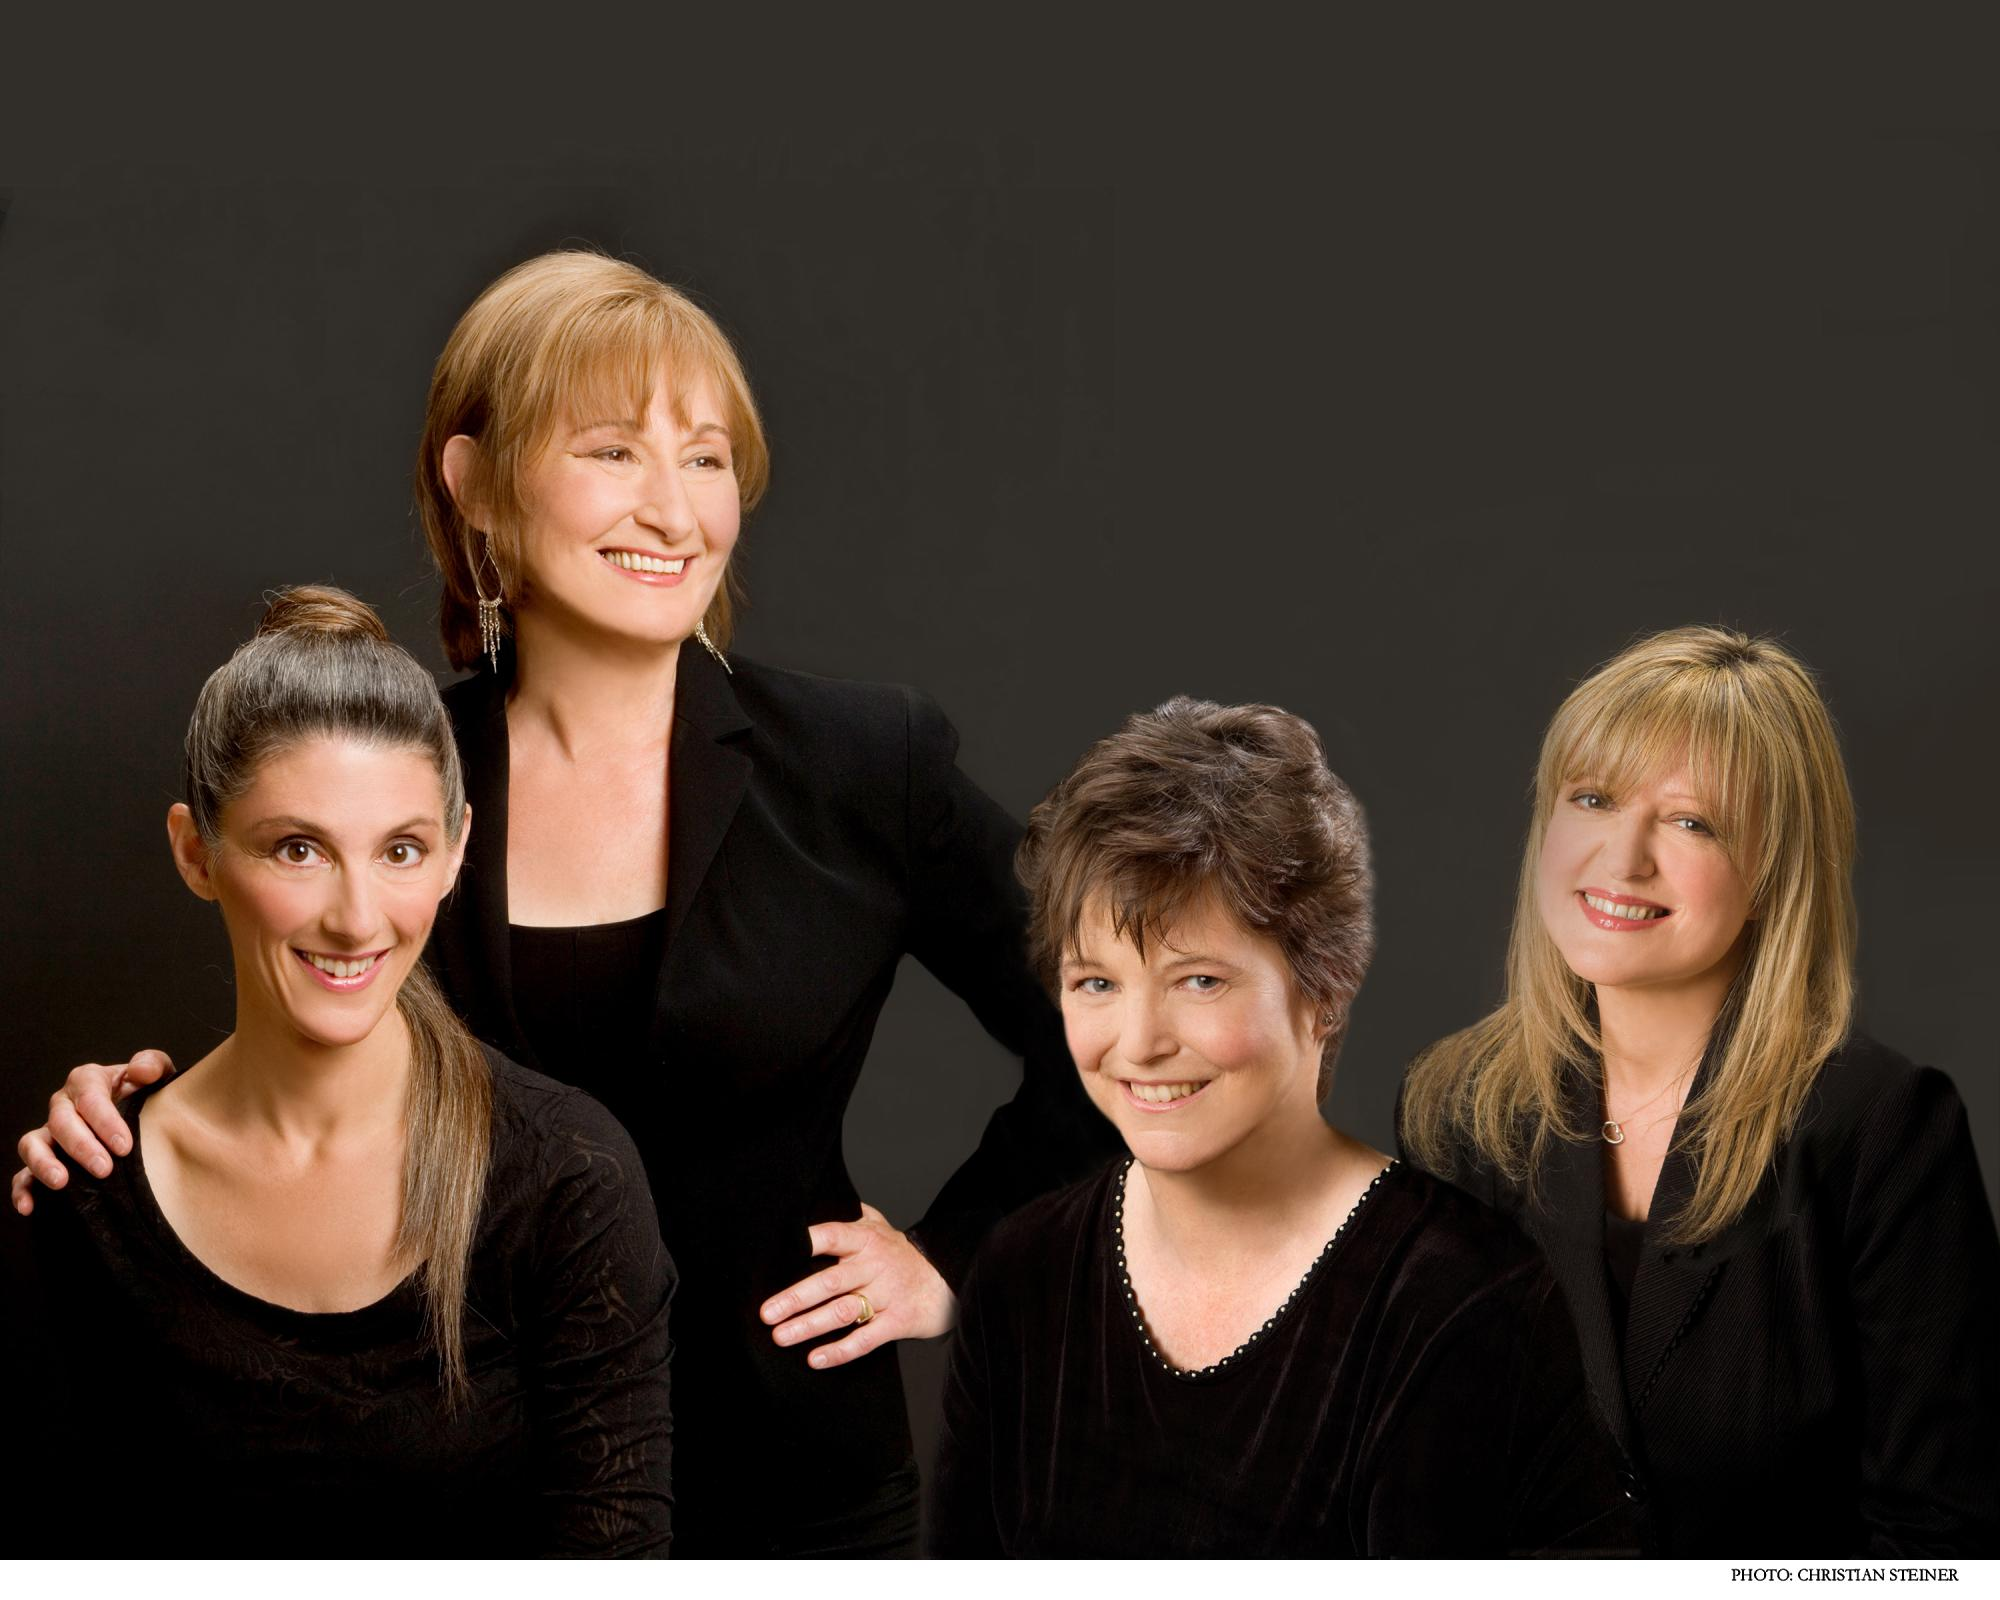 Marsha, Susan, Ruth, Jacqui in 2009. Photo: Christian Steiner